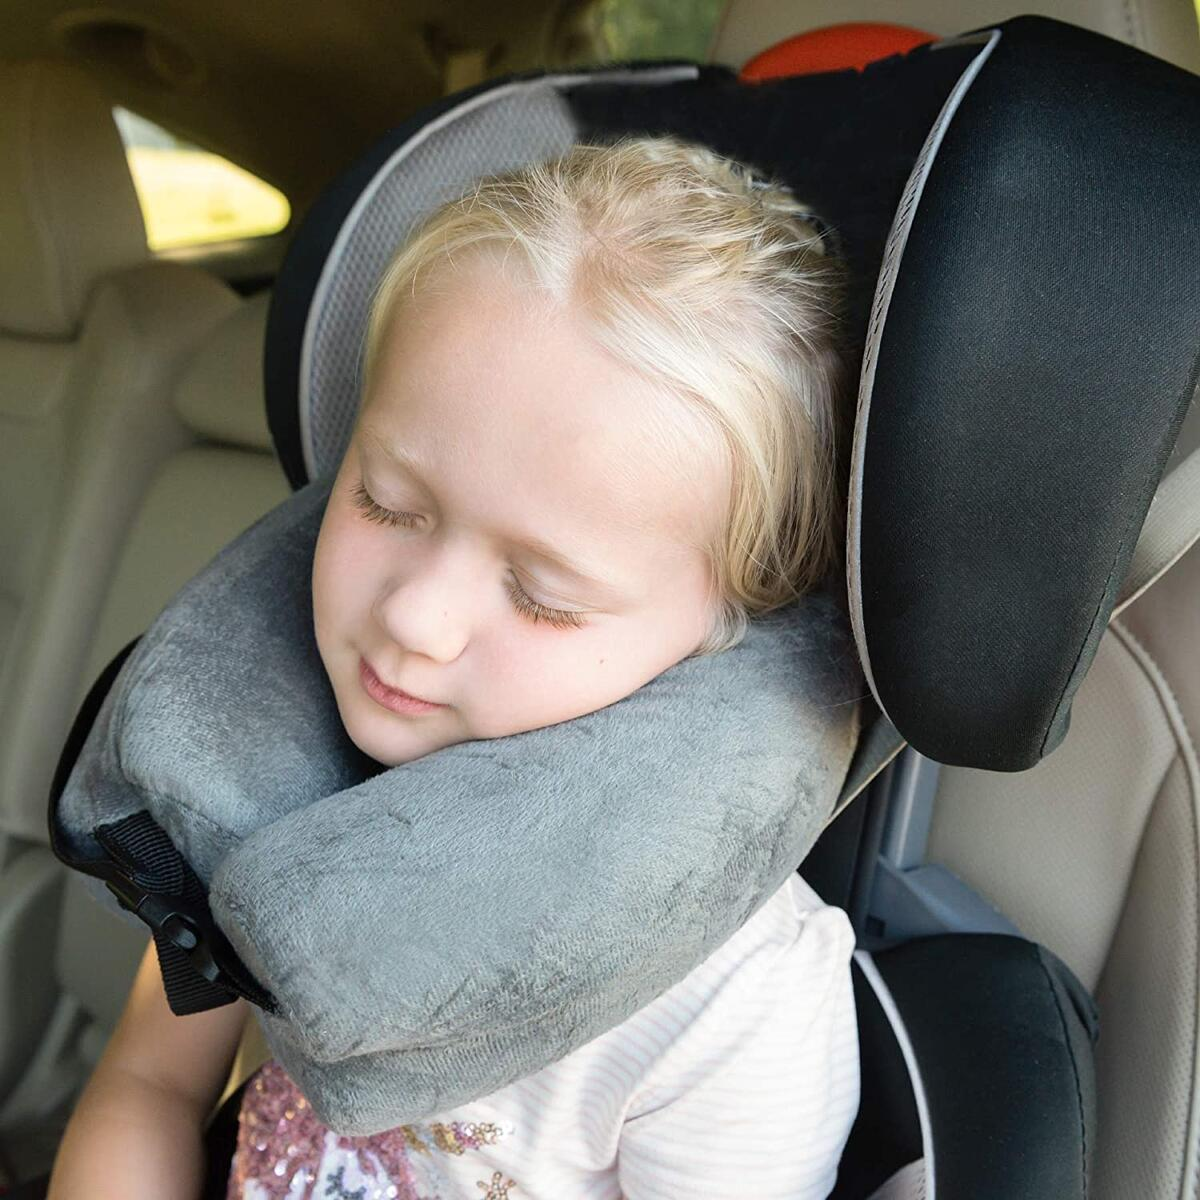 Bendable Memory Foam Travel Pillow - Neck Pillow for Airplane, Bus, Train or Relaxing at Home (No Twistable Core)